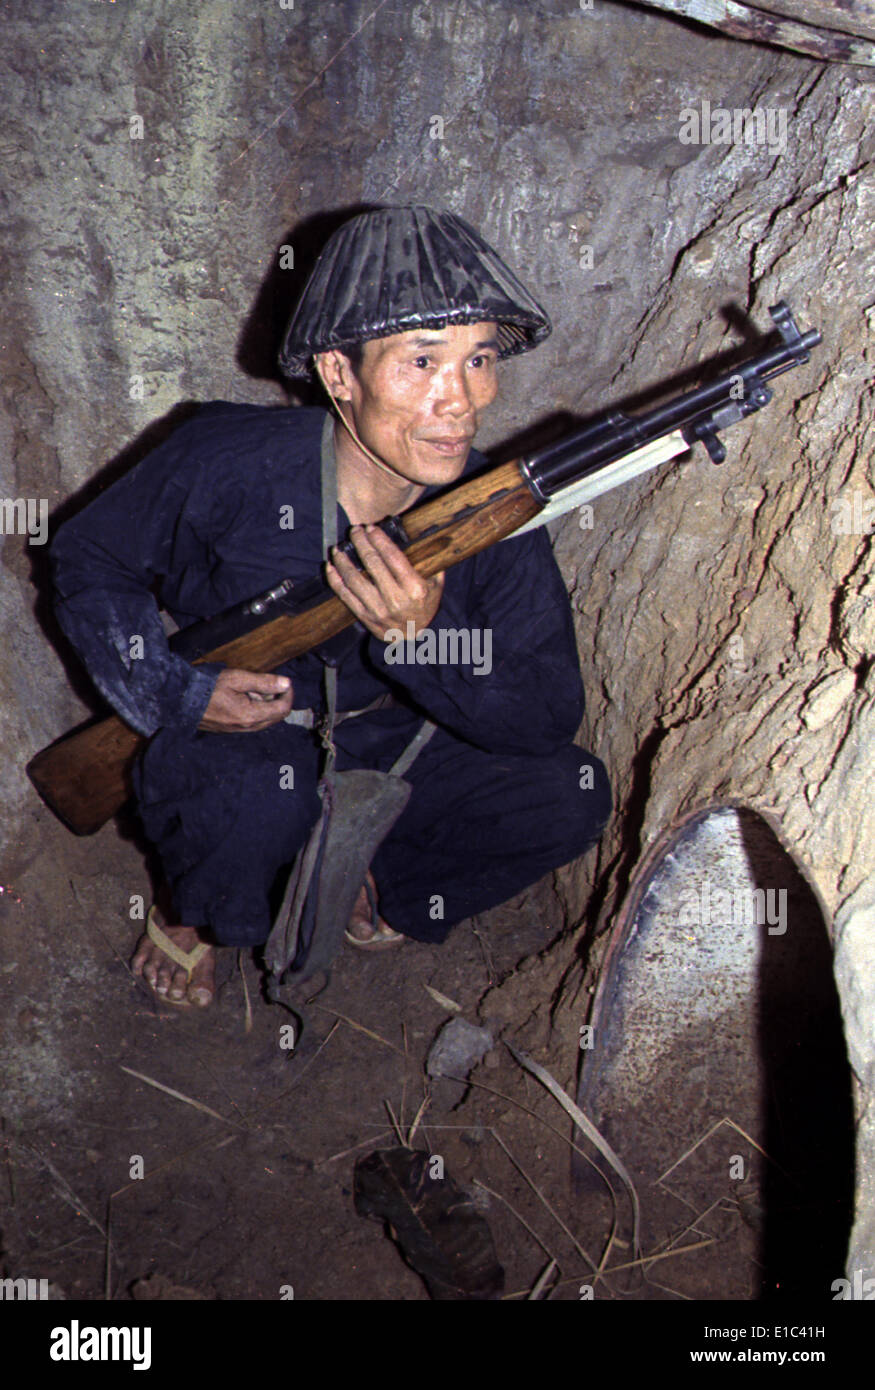 Vietnam War, a Viet Cong, soldier crouches in a bunker with